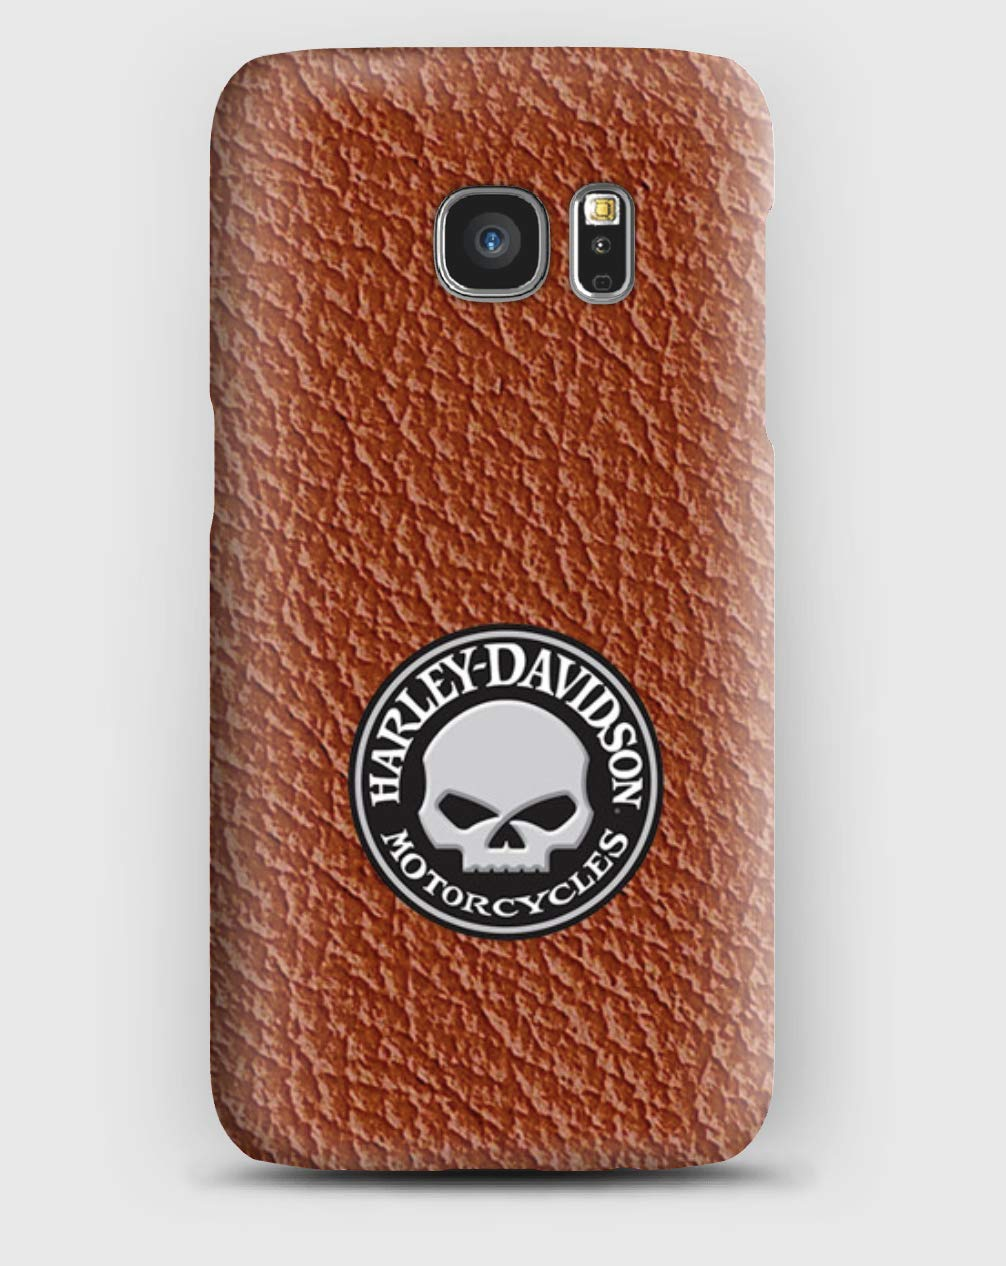 Just in Harley Davidson, Cover Samsung S5, S6, S7, S8, A3, A5, A8, J3, J5, Note 5,8,9